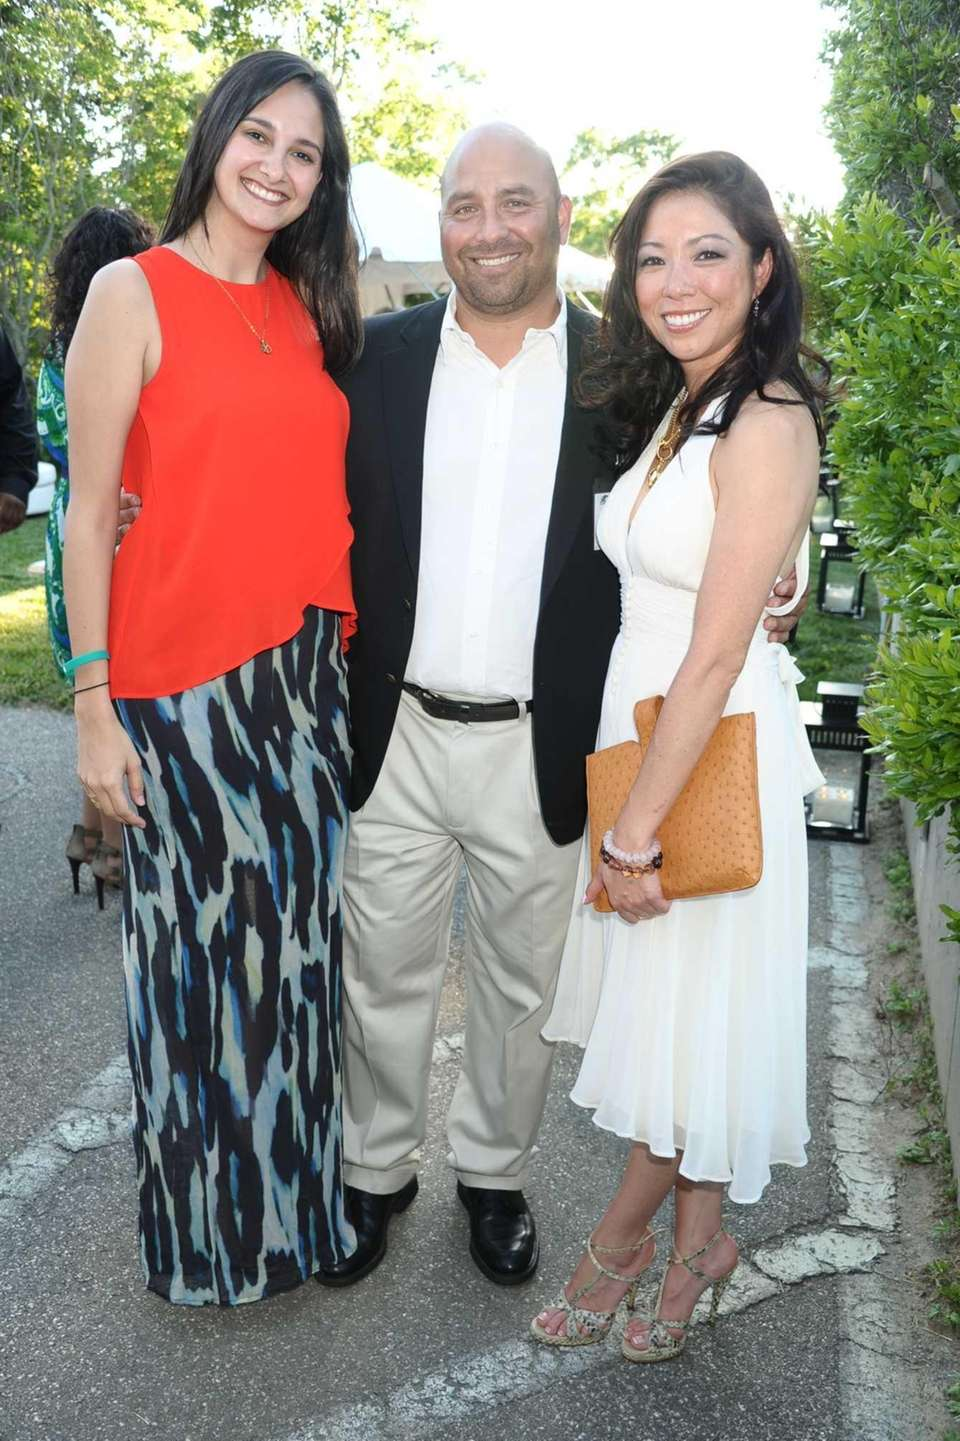 Fernanda Zapato, Frank Ocevedo, and Amy Ma attend